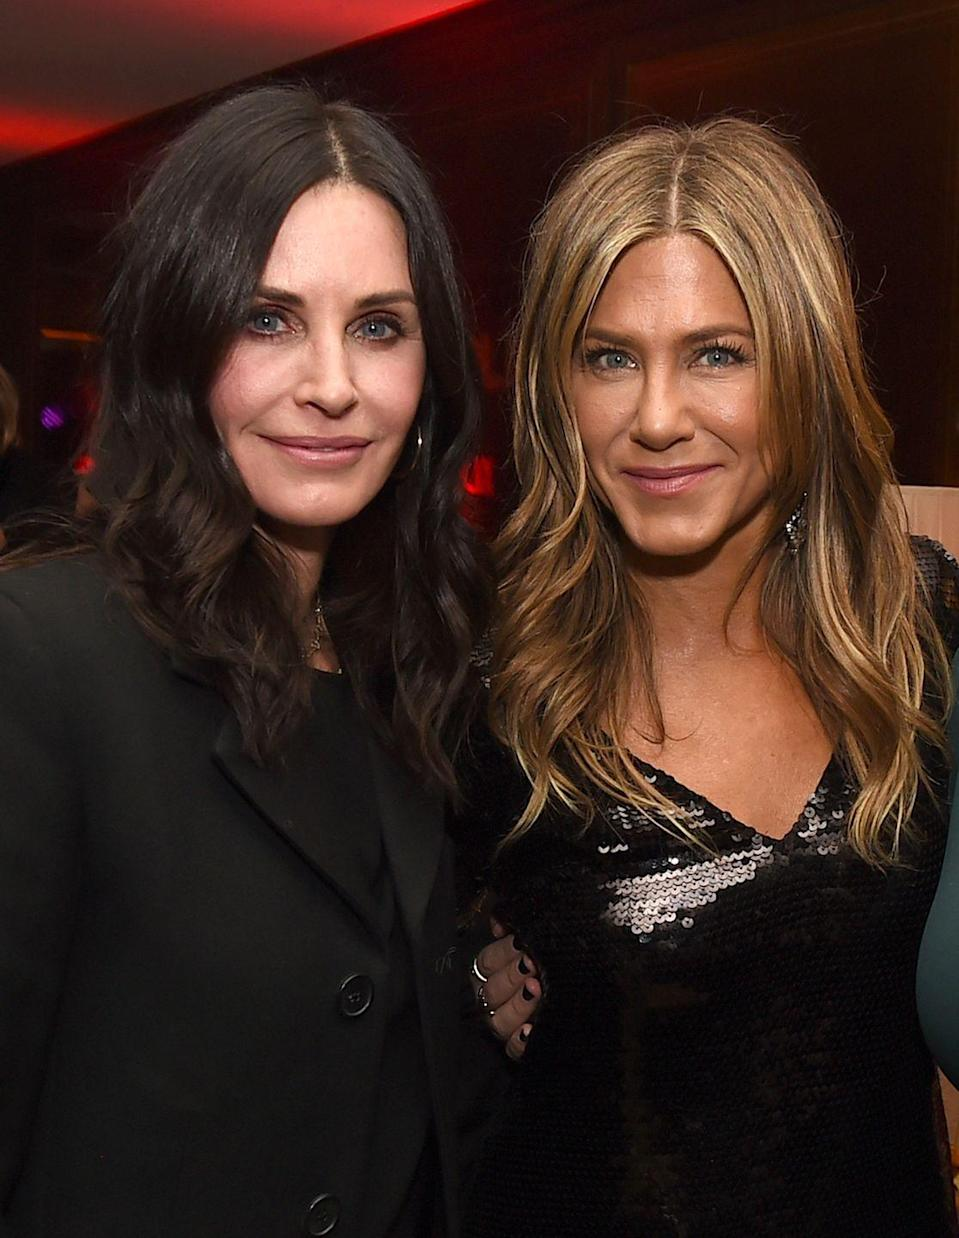 """<p><strong>""""</strong>We just have fun, we laugh, we're inseparable and it's great. Jennifer has been amazing for sure."""" — Courteney Cox, <em><a href=""""https://www.accessonline.com/articles/courteney-cox-talks-separation-with-david-arquette-relying-on-jennifer-aniston-92292#jF2KOFx0kZugg5UD.99"""" rel=""""nofollow noopener"""" target=""""_blank"""" data-ylk=""""slk:Access"""" class=""""link rapid-noclick-resp"""">Access</a></em></p><p>""""There's absolutely no judgment in Court. You'll never feel scolded. She's extremely fair, ridiculously loyal, and fiercely loving...Without giving away too much of my private stuff, all I can say is she's been there for me through thick and thin."""" — Jennifer Aniston, <em><a href=""""https://www.usmagazine.com/celebrity-news/news/jennifer-aniston-praises-friend-courteney-cox-shes-been-there-for-me-through-thick-and-thin-2014281/?utm_source=popsugar.com&utm_medium=referral&utm_campaign=pubexchange_article"""" rel=""""nofollow noopener"""" target=""""_blank"""" data-ylk=""""slk:Us Weekly"""" class=""""link rapid-noclick-resp"""">Us Weekly</a></em></p>"""